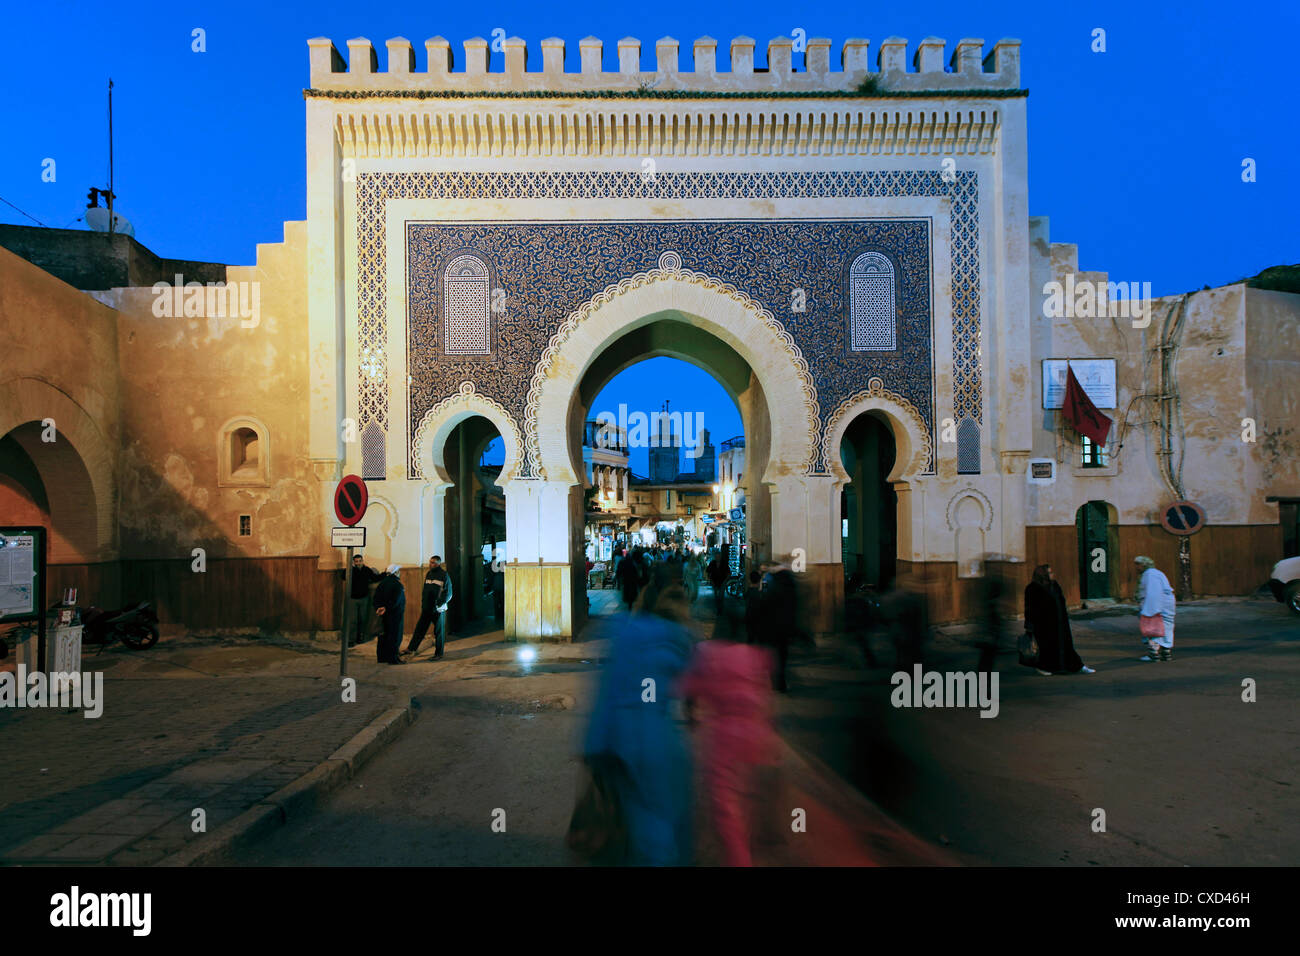 Blue tiled archway of the Bab Bou Jeloud city gate to medina, Fez, Middle Atlas, Morocco, Africa - Stock Image